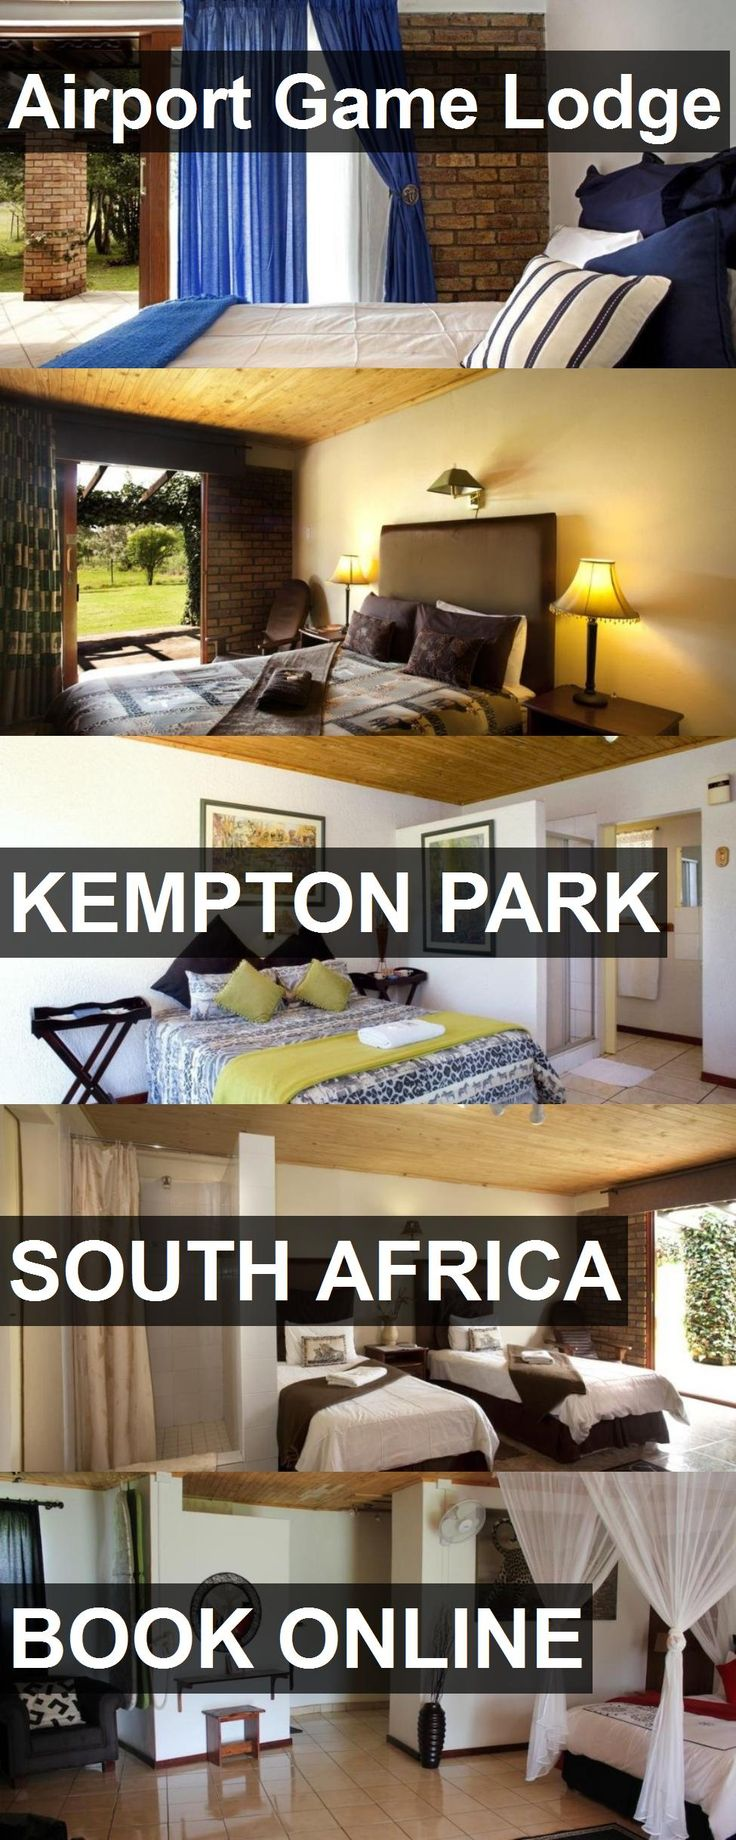 Hotel Airport Game Lodge in Kempton Park, South Africa. For more information, photos, reviews and best prices please follow the link. #SouthAfrica #KemptonPark #AirportGameLodge #hotel #travel #vacation